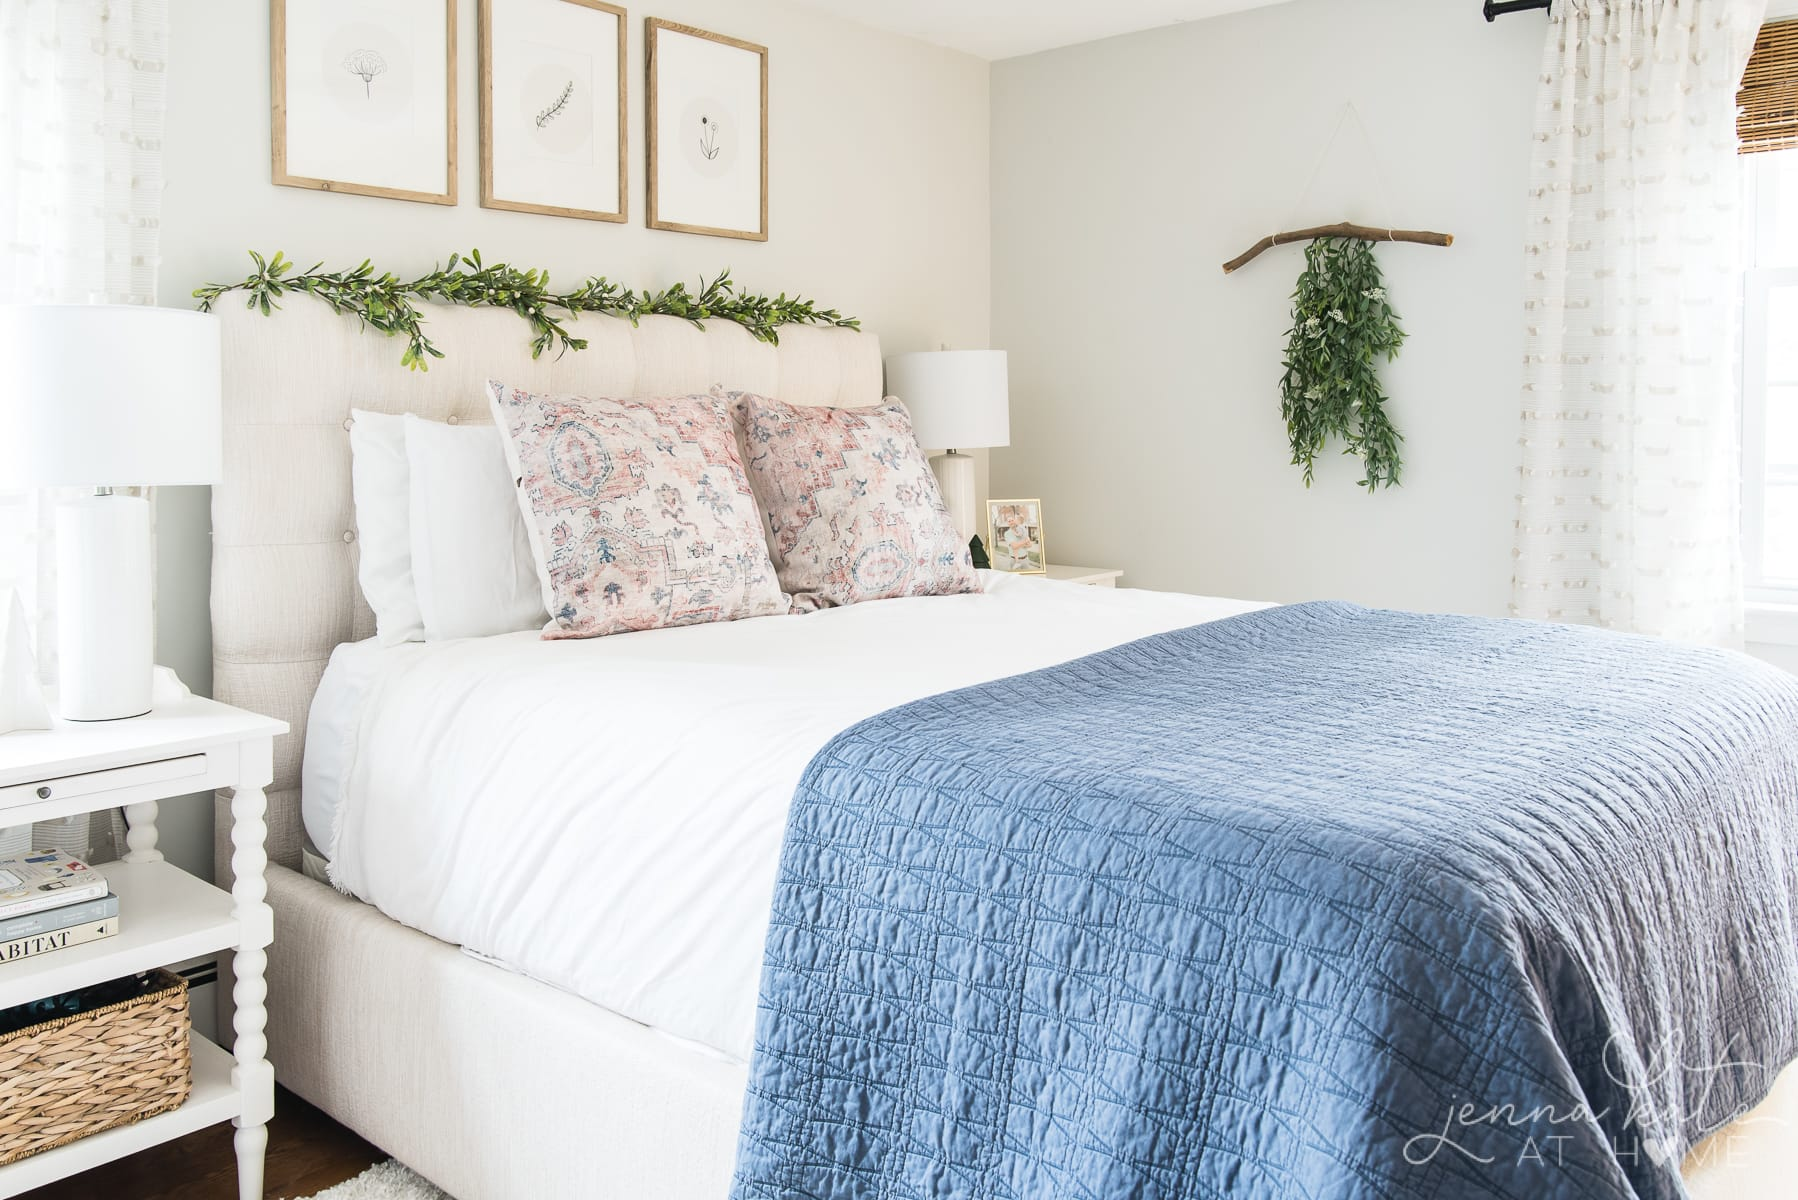 Bedroom decorated for Christmas with blue duvet, and some simple greenery